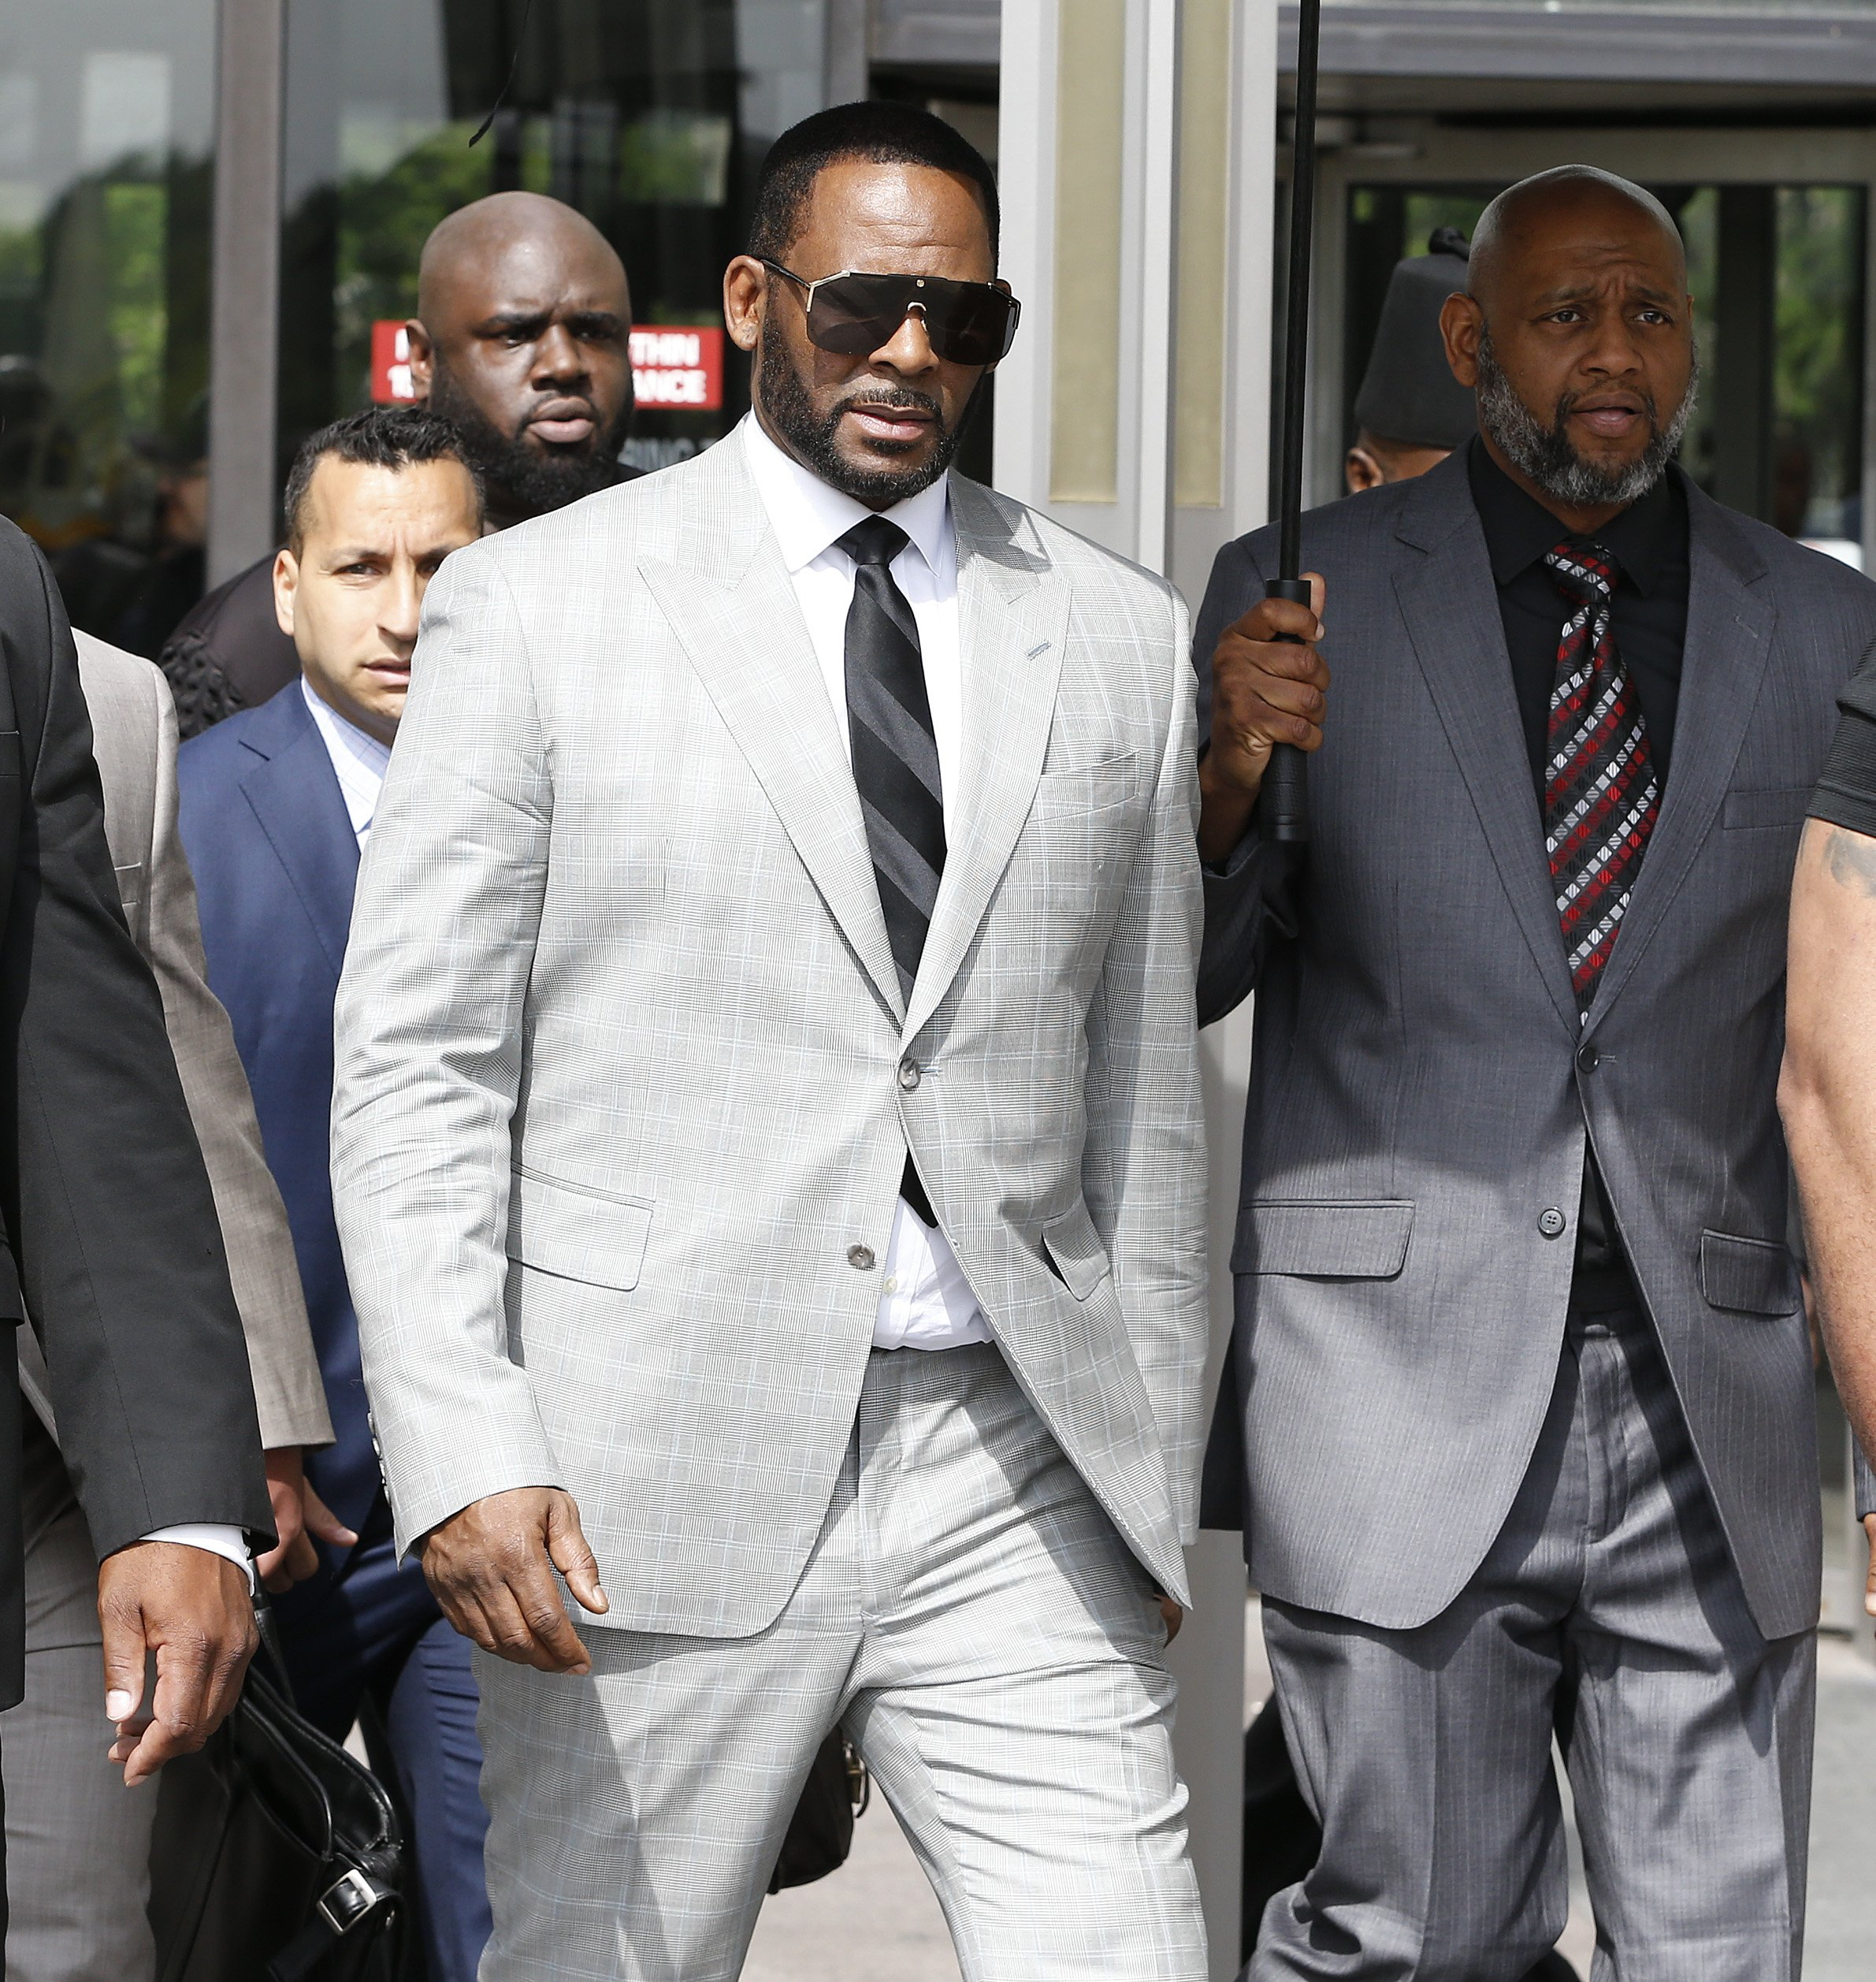 R. Kelly appearing in court as he faced new criminal sexual abuse charges in June 2019. | Photo: Getty Images